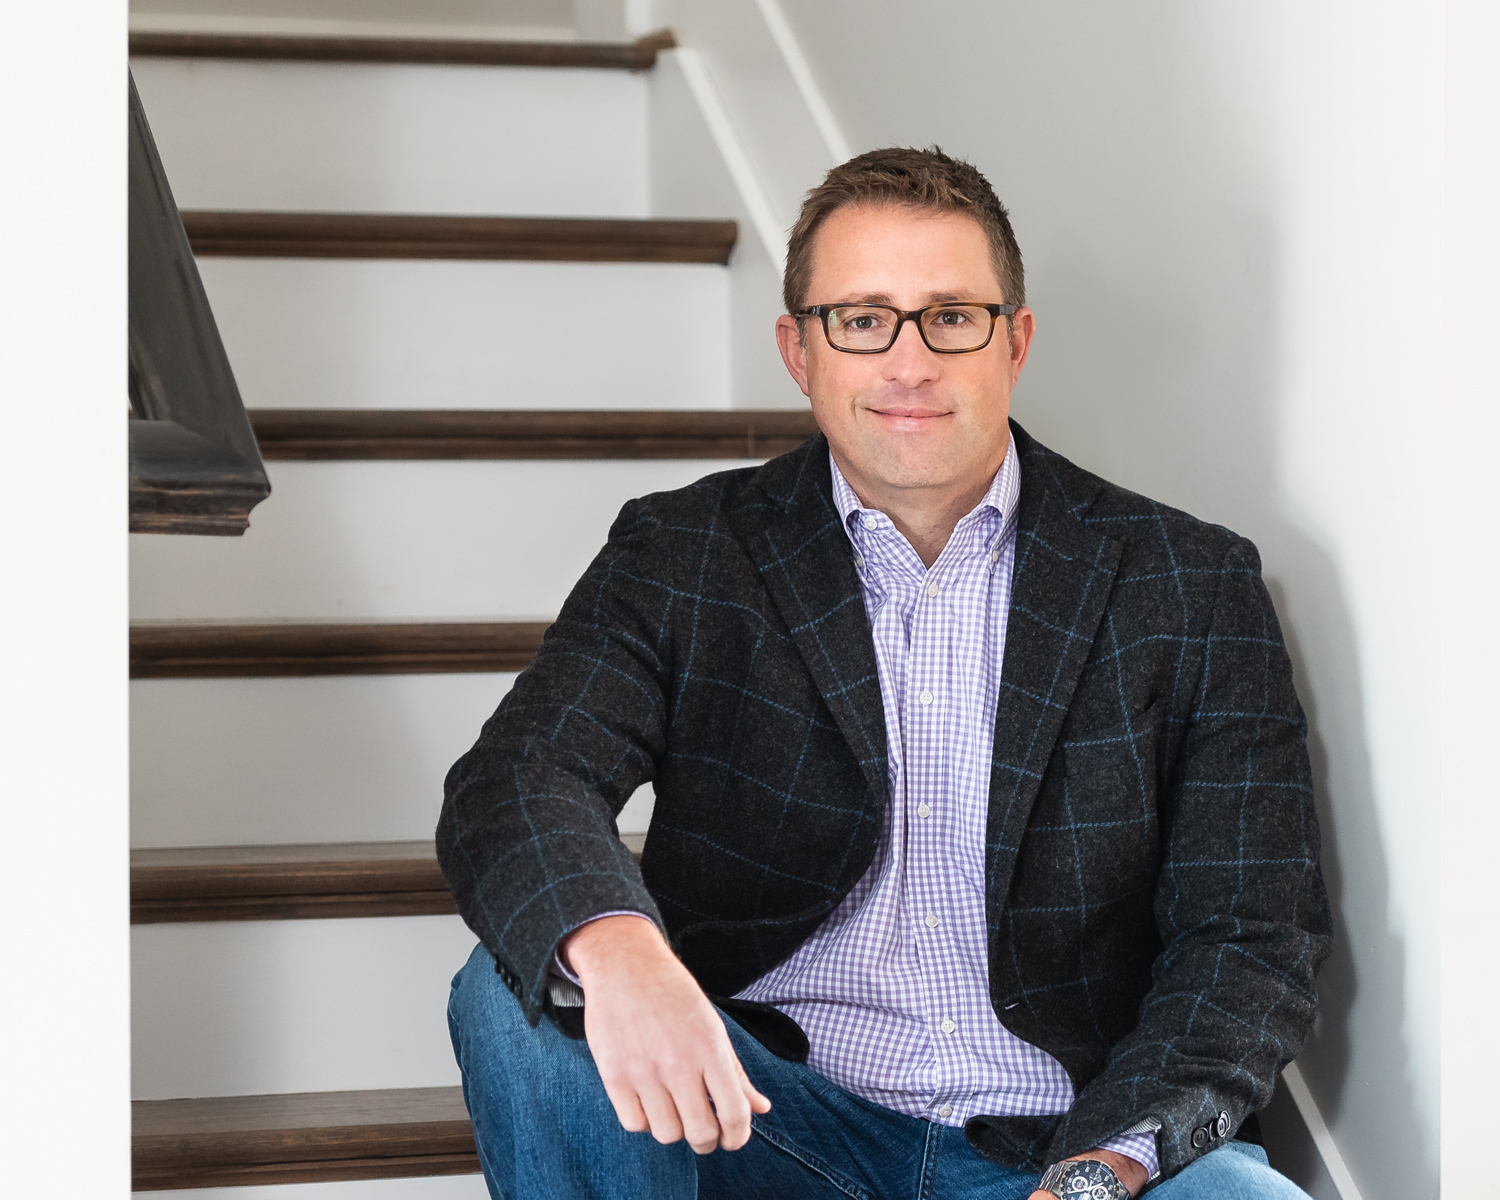 Cincinnati Custom Home Building Company WP Land CEO Mat Walker sits on the newly constructed stairs at the newest WP Land market house in Kensington of Mason in Deerfield Township, Cincinnati, OH.